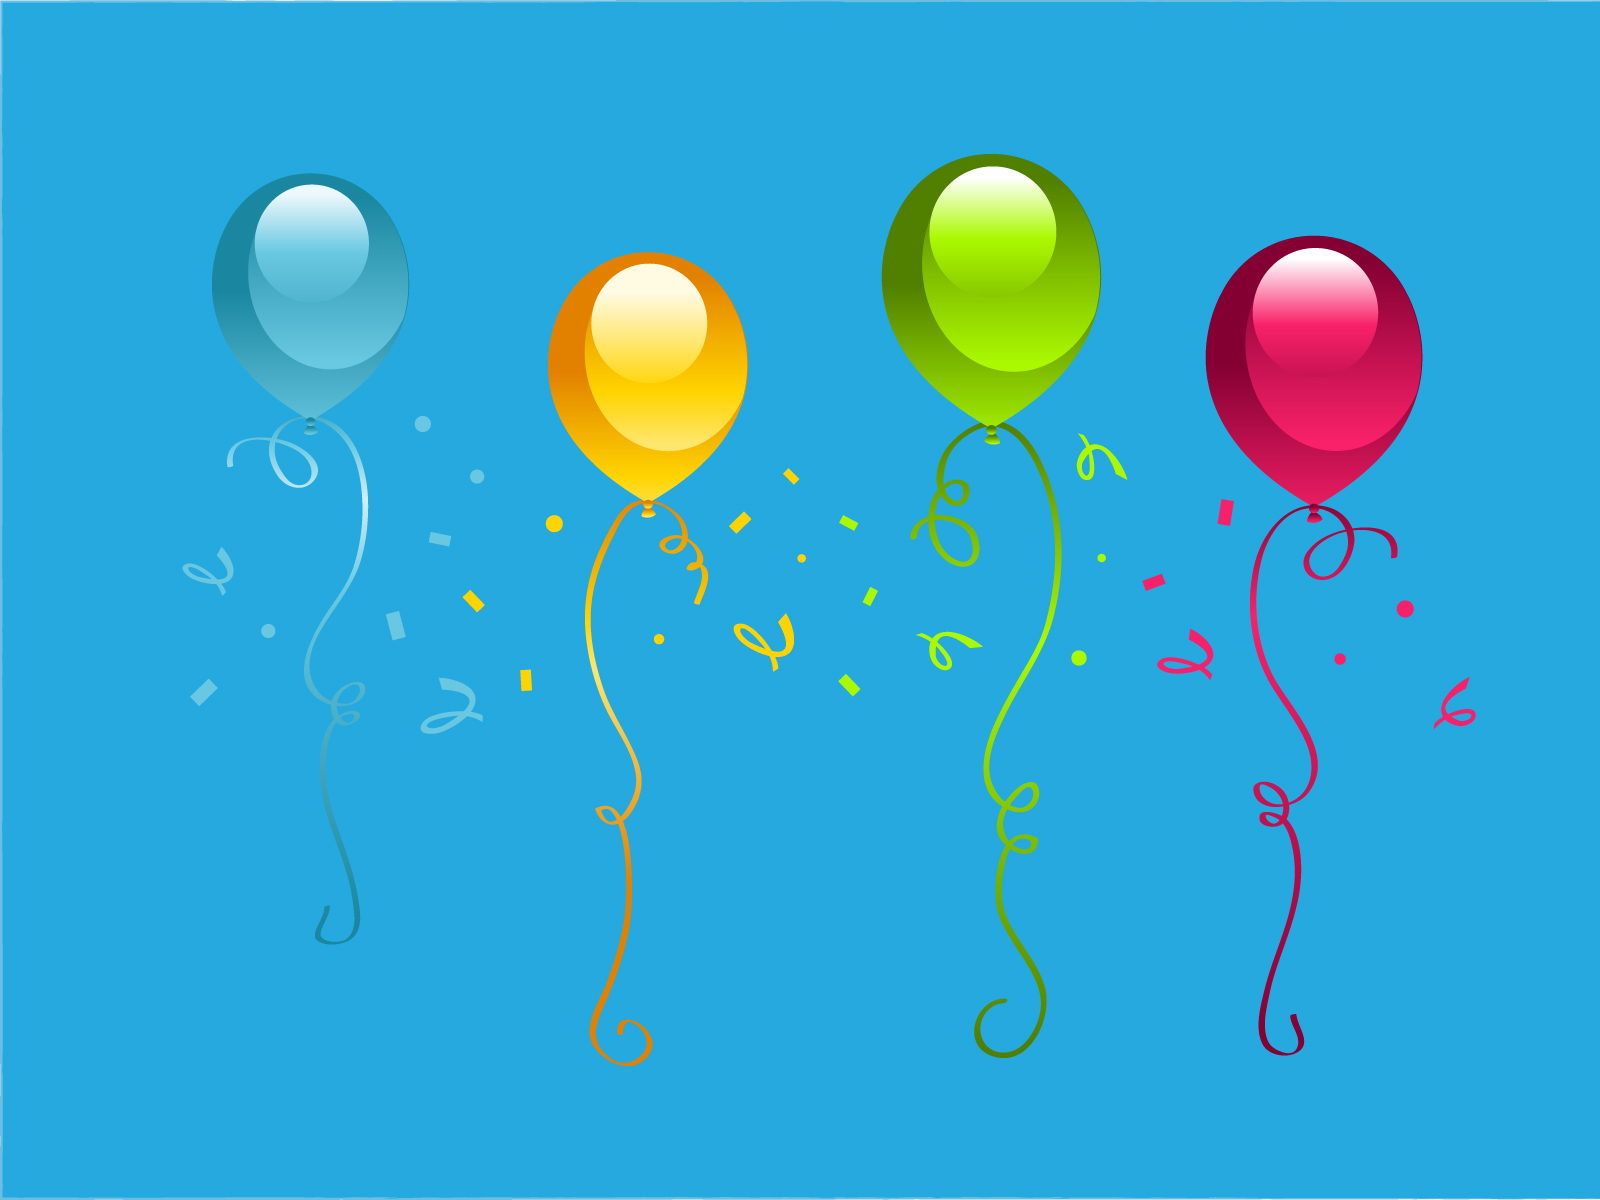 birthday party presentation backgrounds blue cartoon